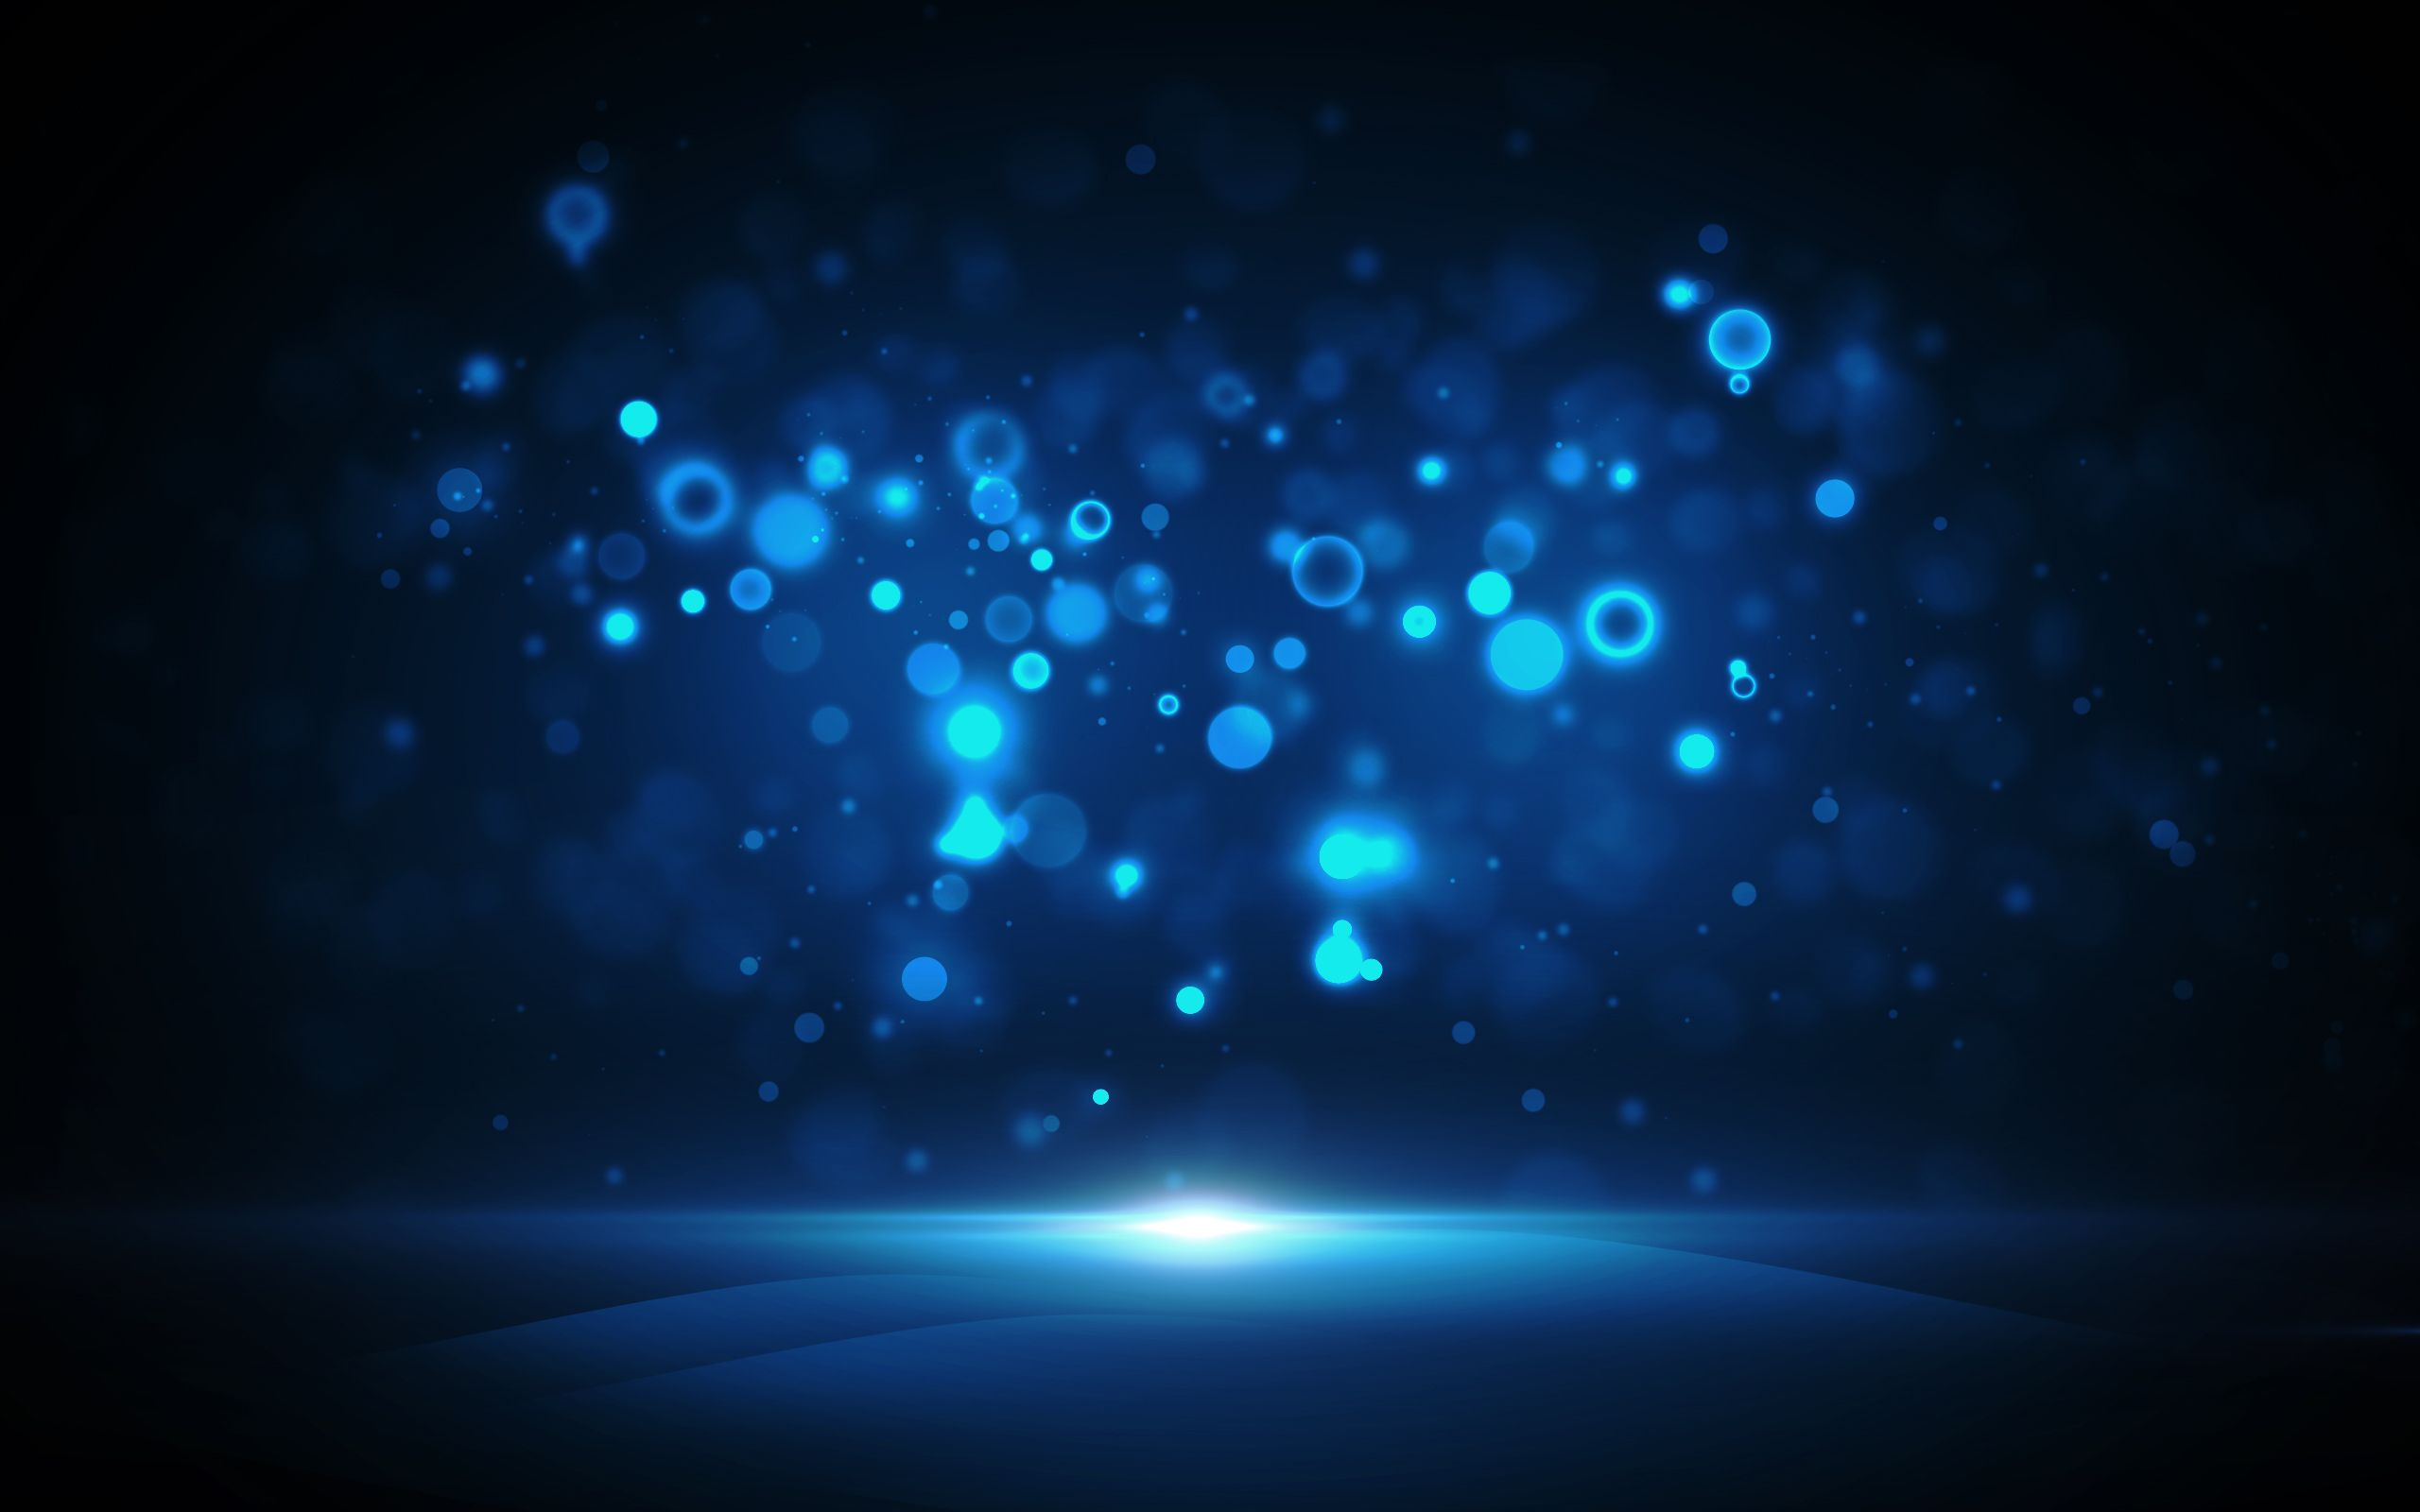 Circles Blue Dark Bokeh Blurred Is An HD Desktop Wallpaper Posted In Our Free Image Collection Of Abstract Wallpapers